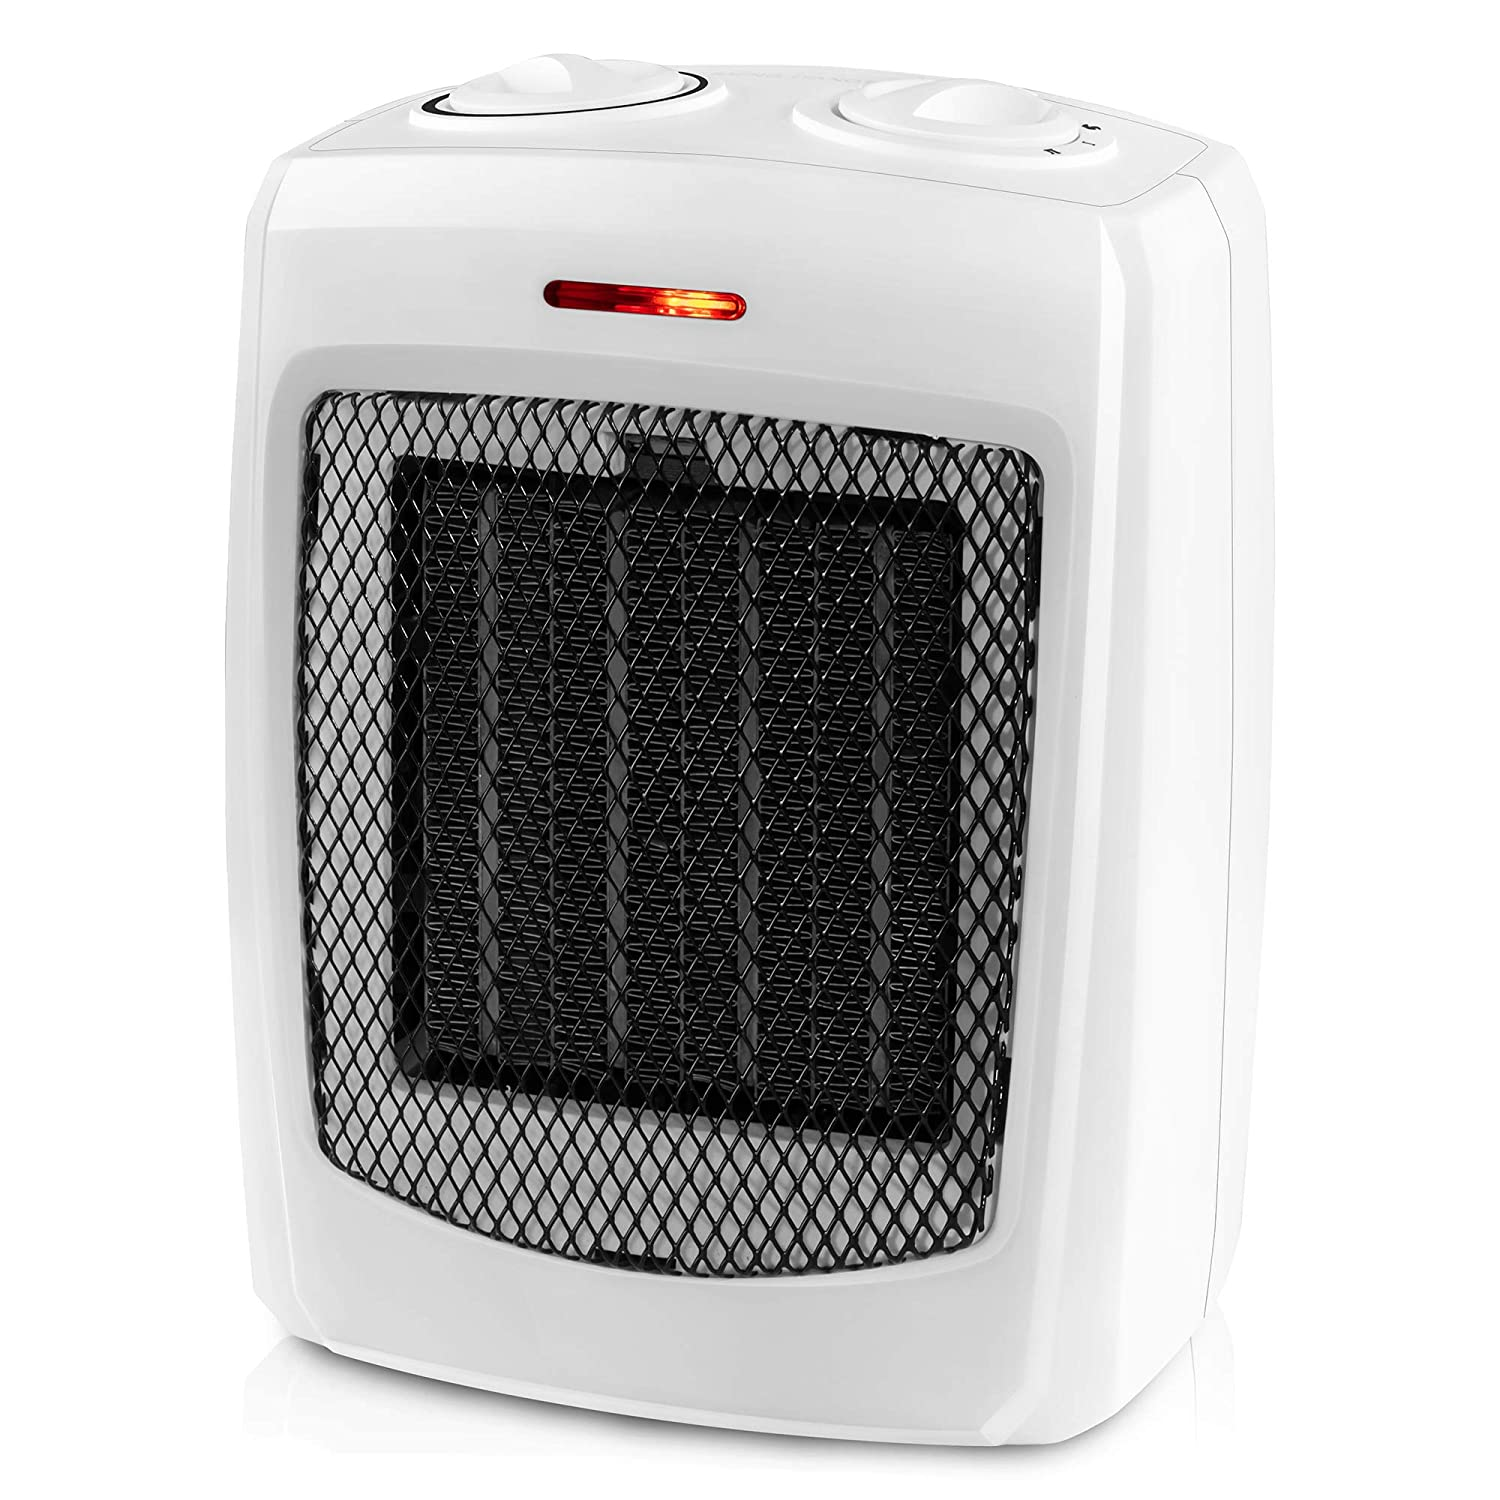 andily Space Heater Electric Heater for Home and Office Ceramic Small Heater with Thermostat, 750W 1500W